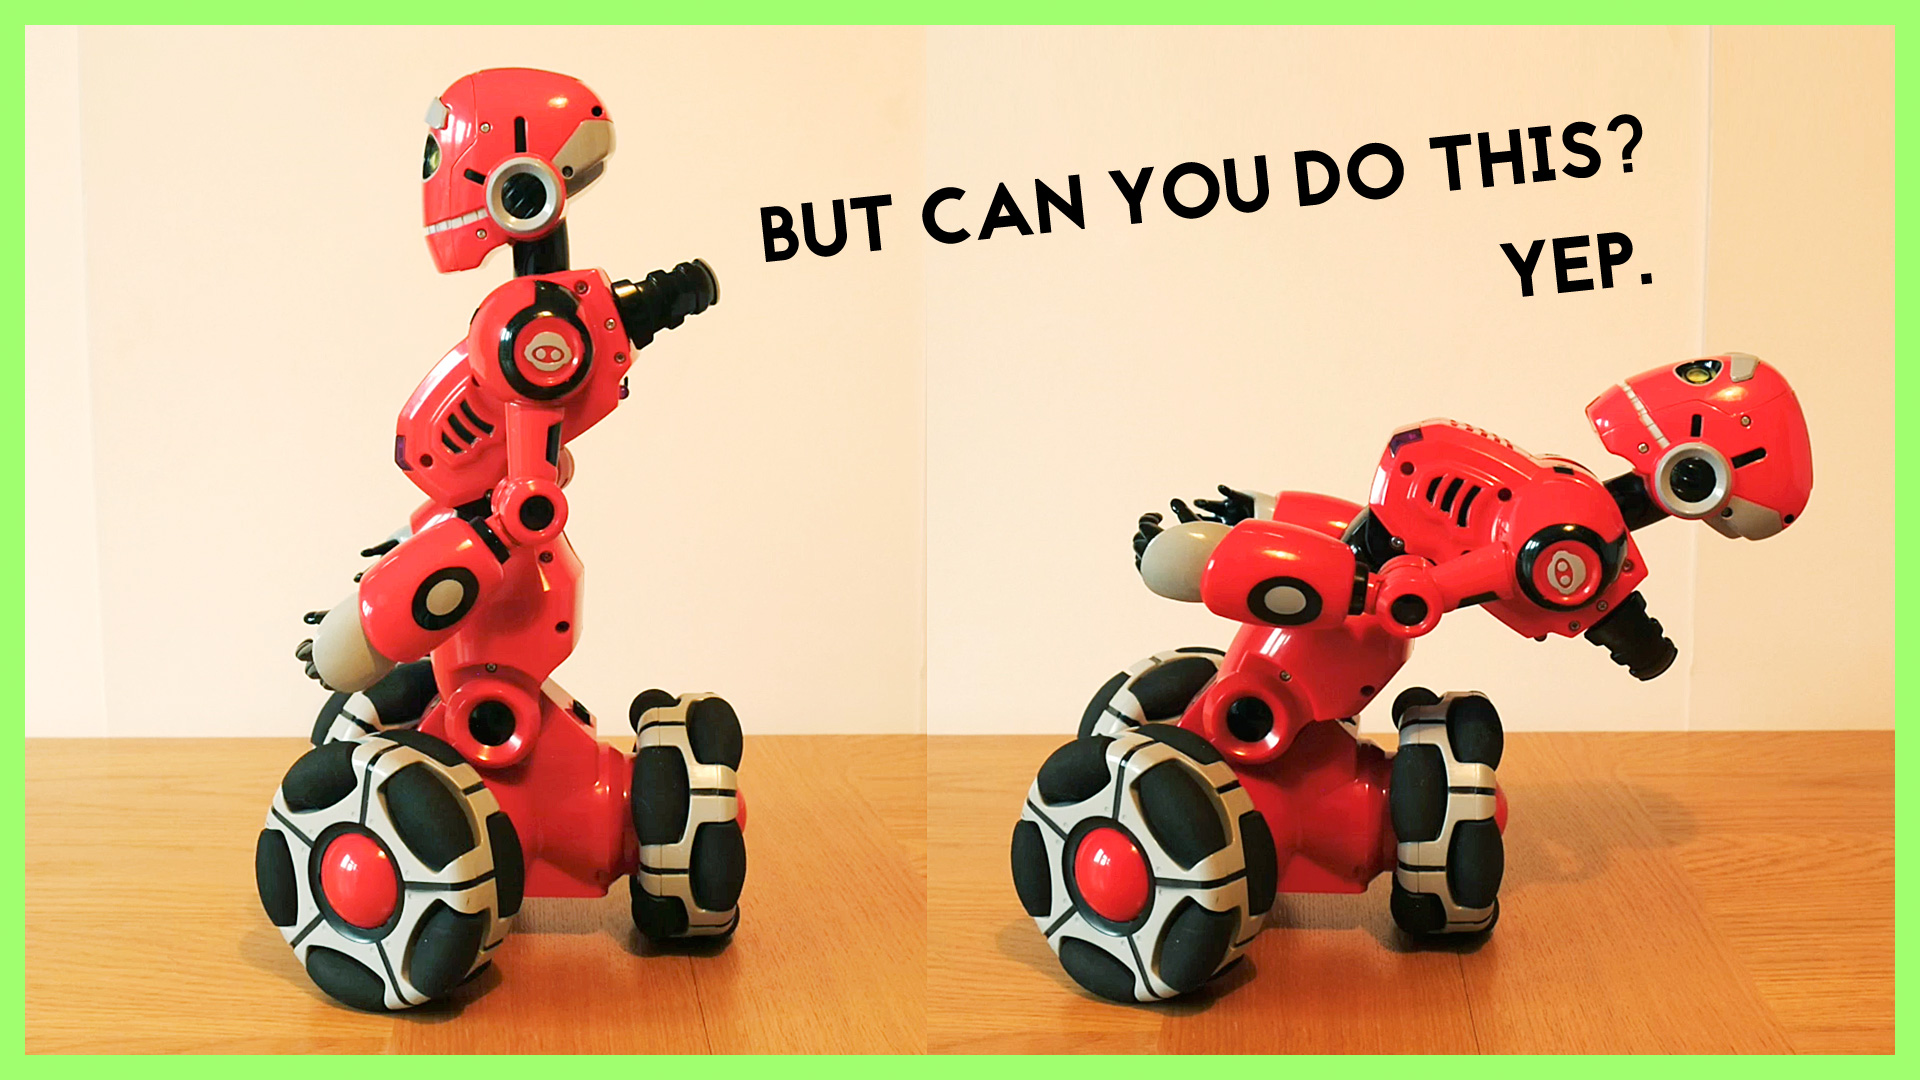 But Can You Do This? … Robot Accepts Challenge!